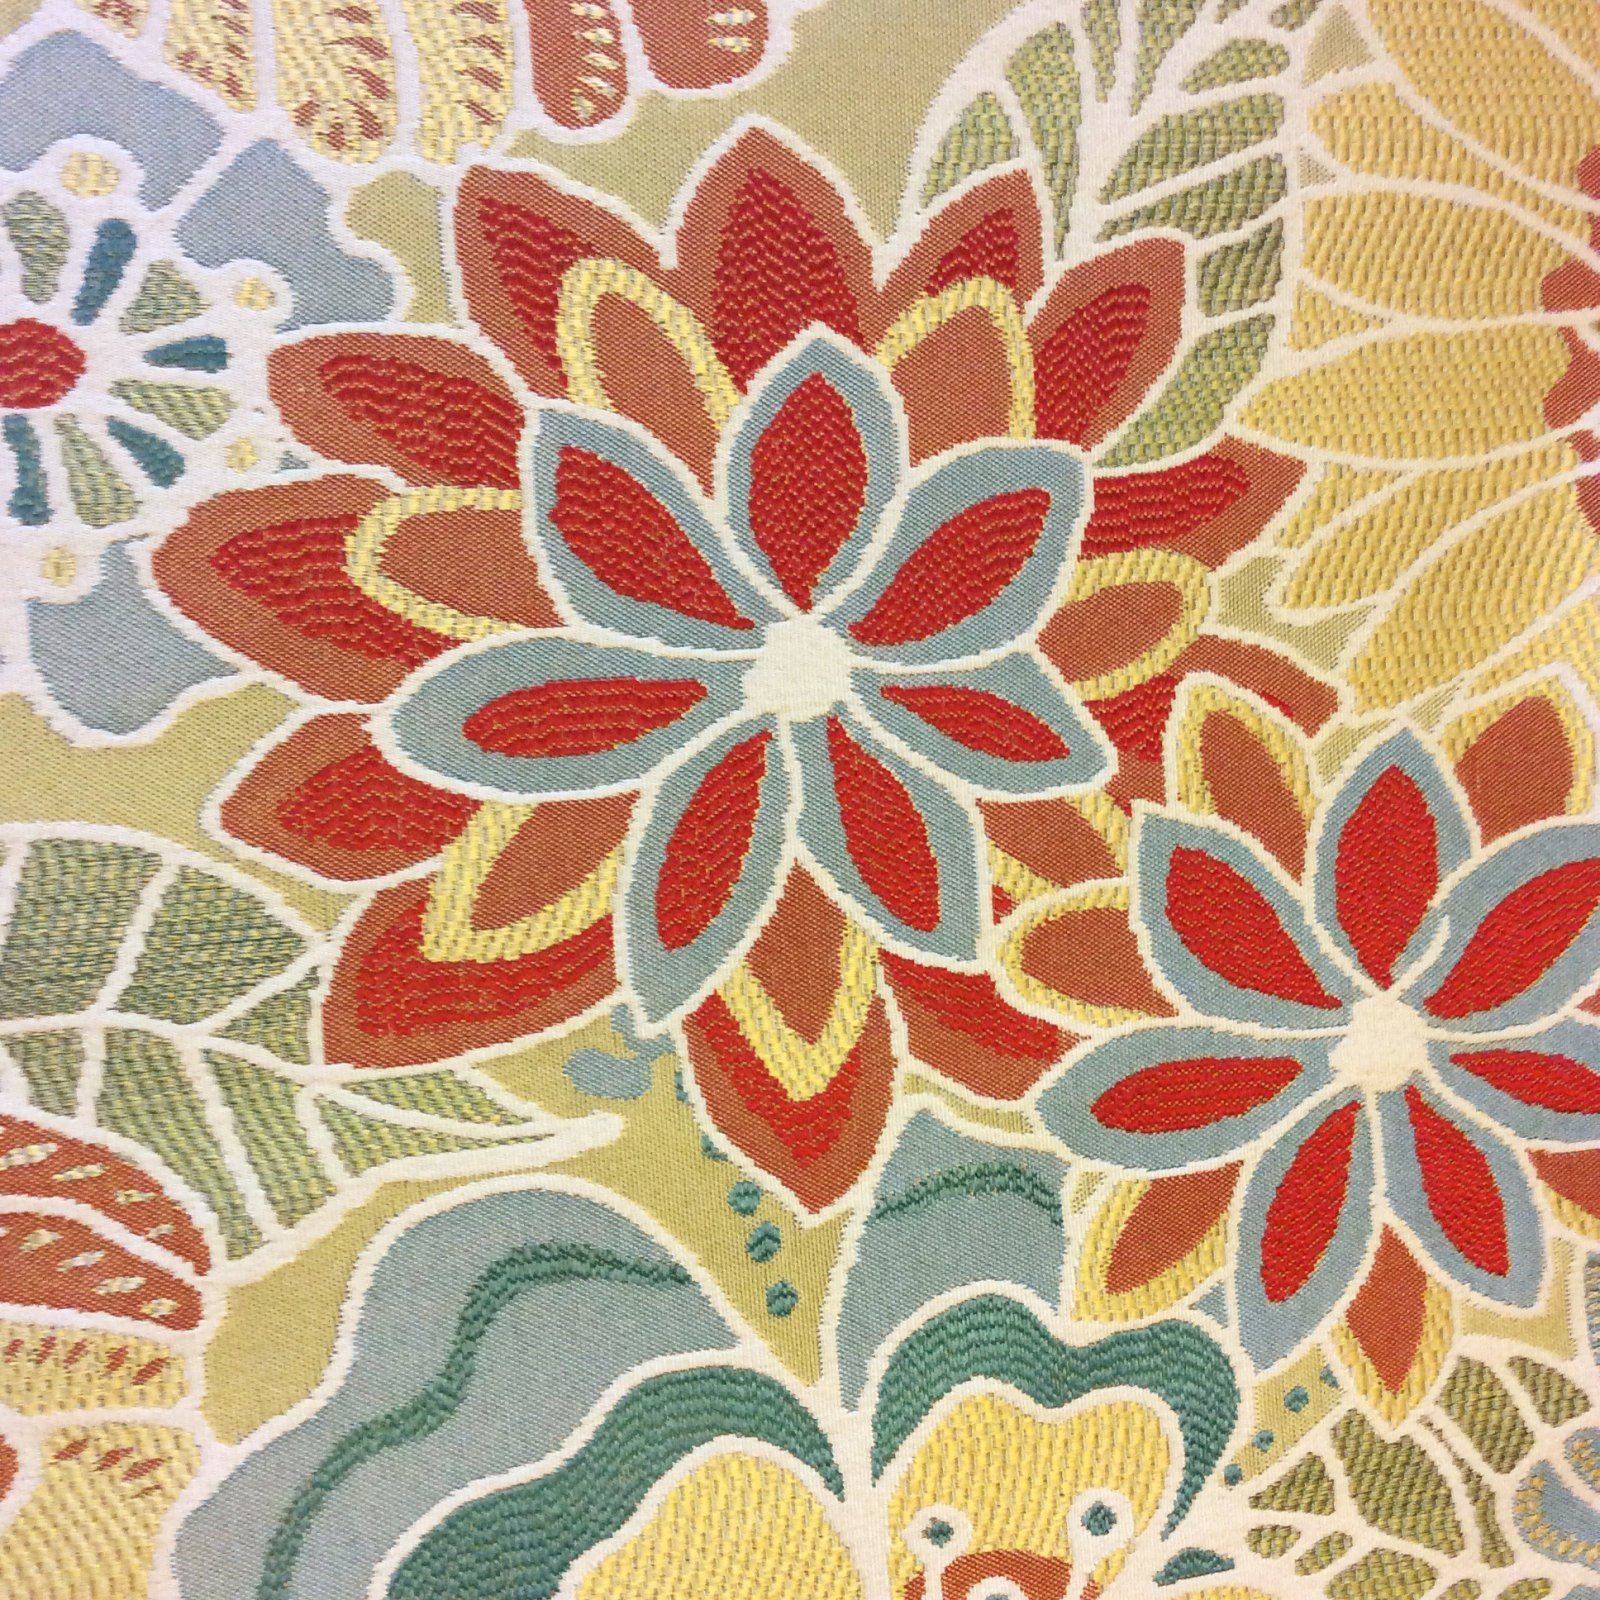 Floral Tapestry Incredible Modern Color Heavy Weight Upholstery Fabric Home Decor Fabric Lhd184c